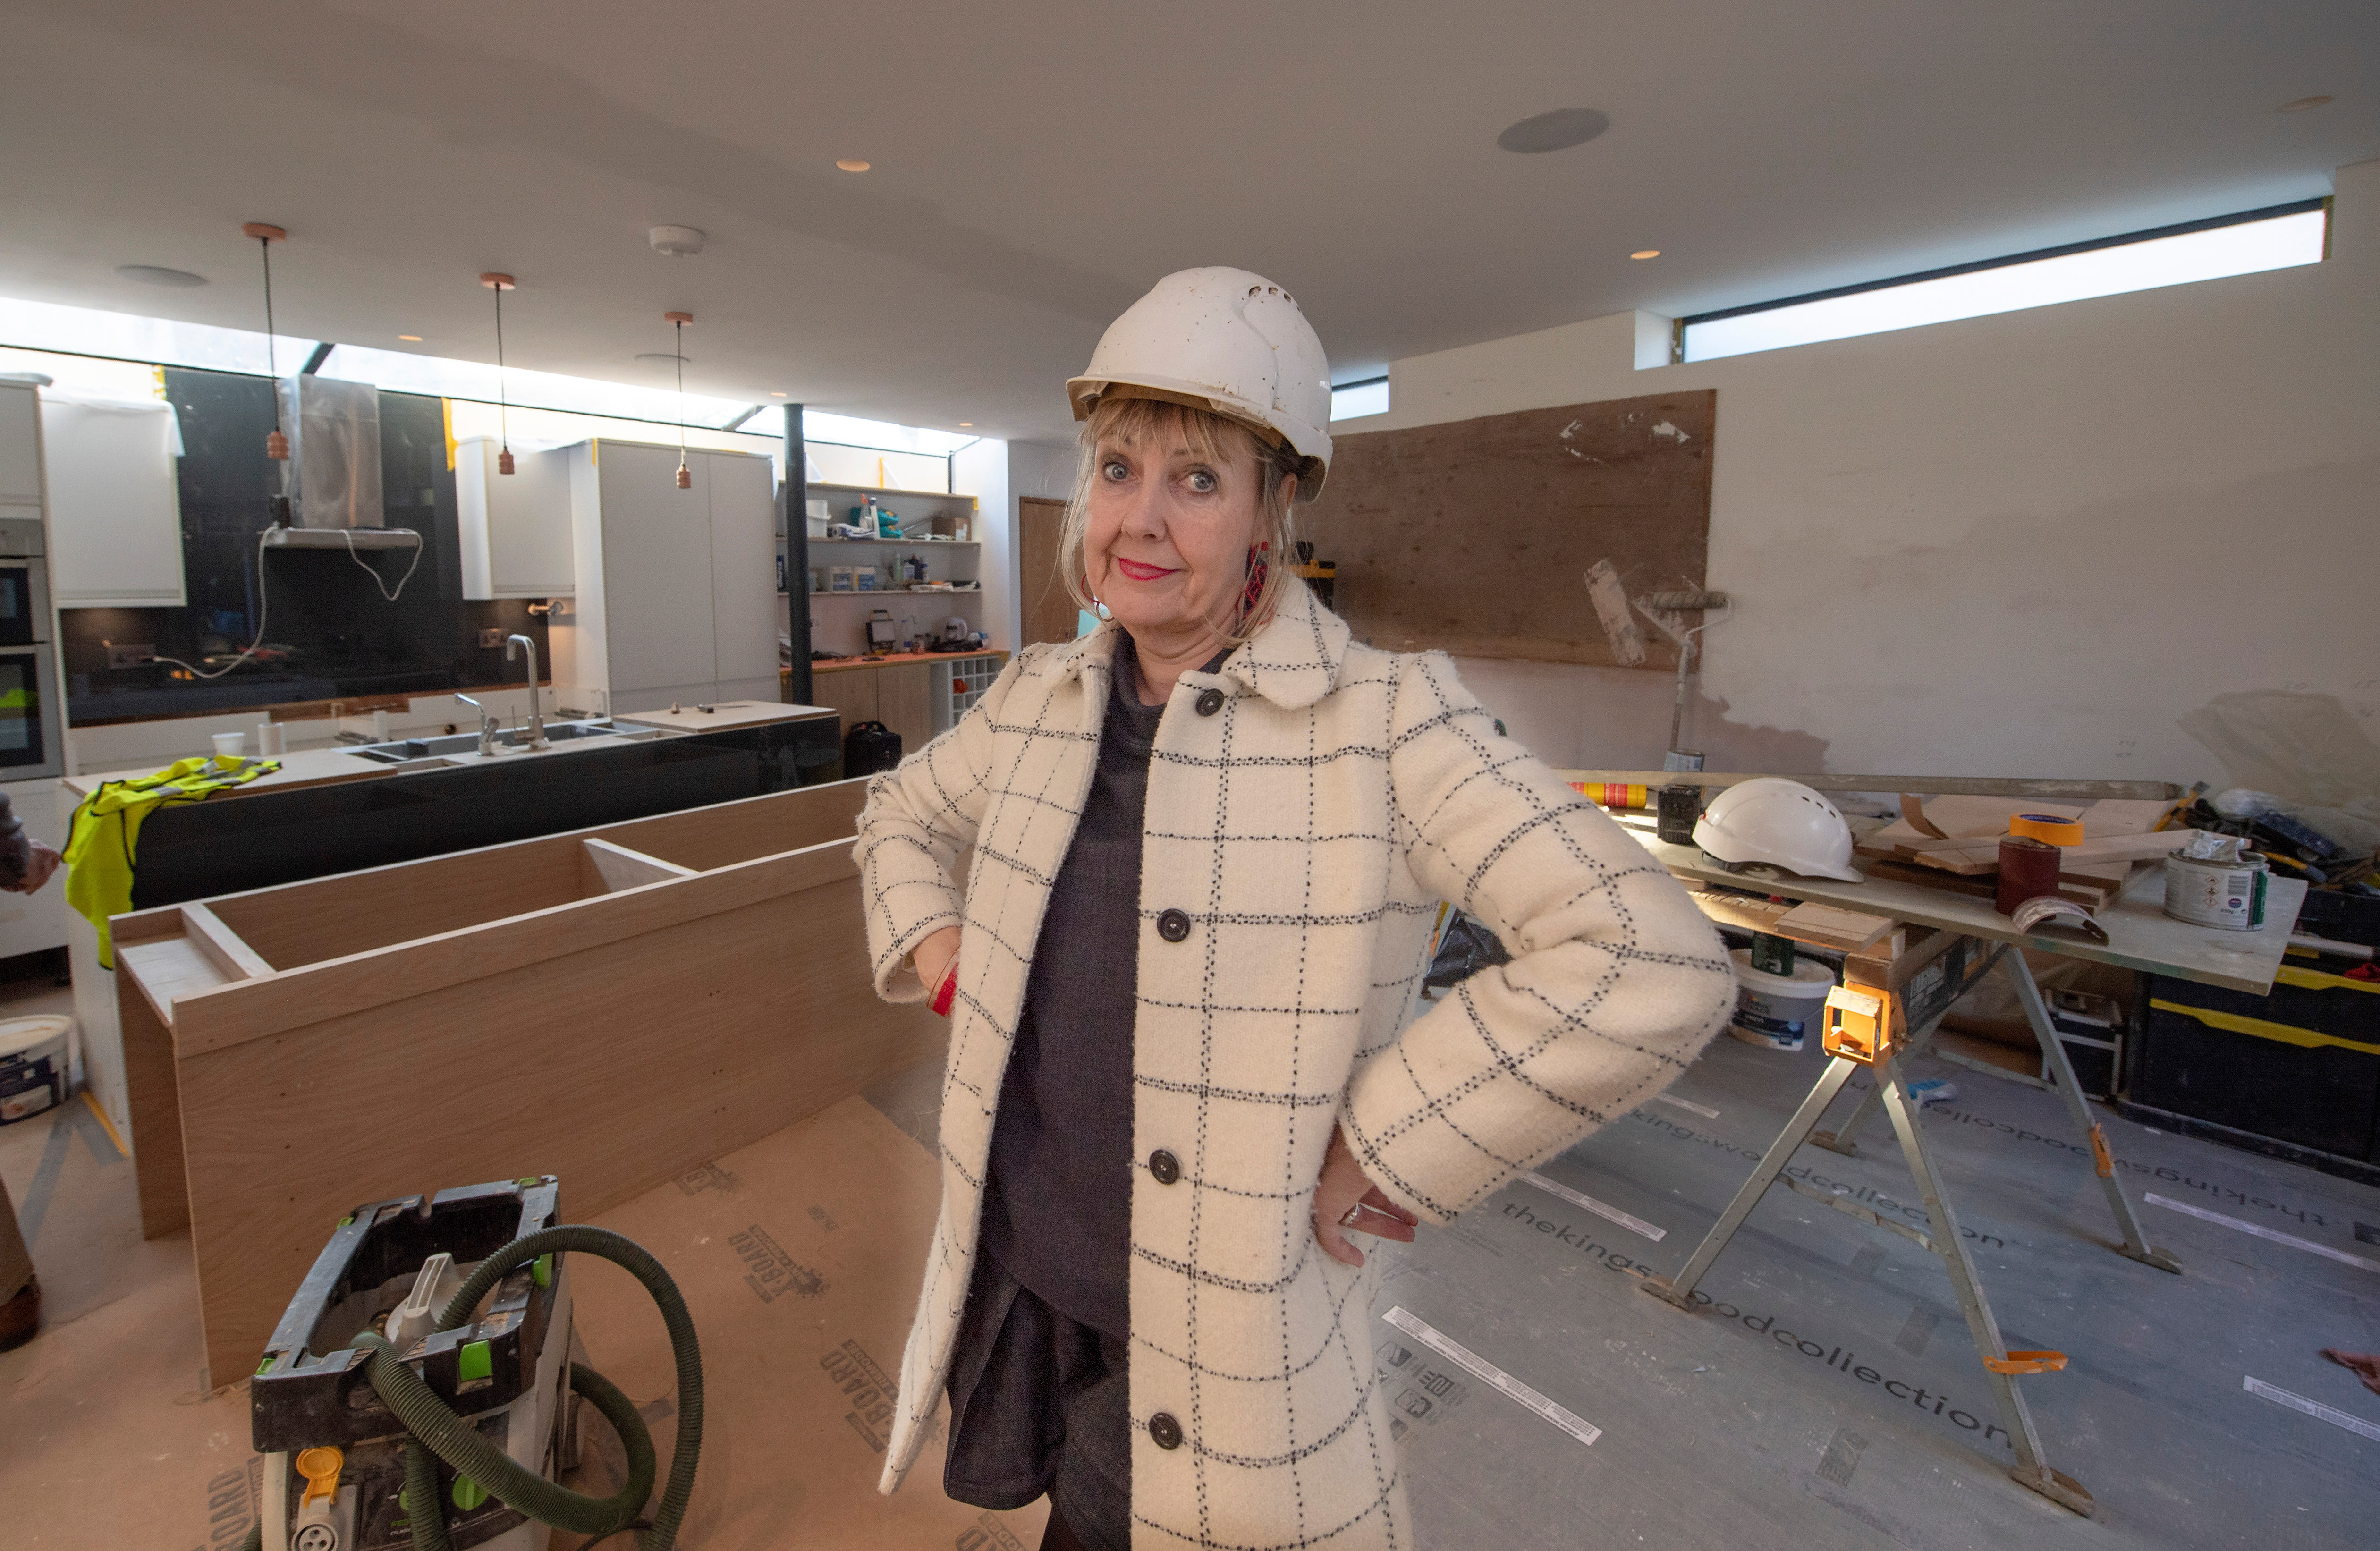 Convicted defrauder's residential property growth company transformed Aggie MacKenzie's ₤770 k desire residence right into a 'house of horror'